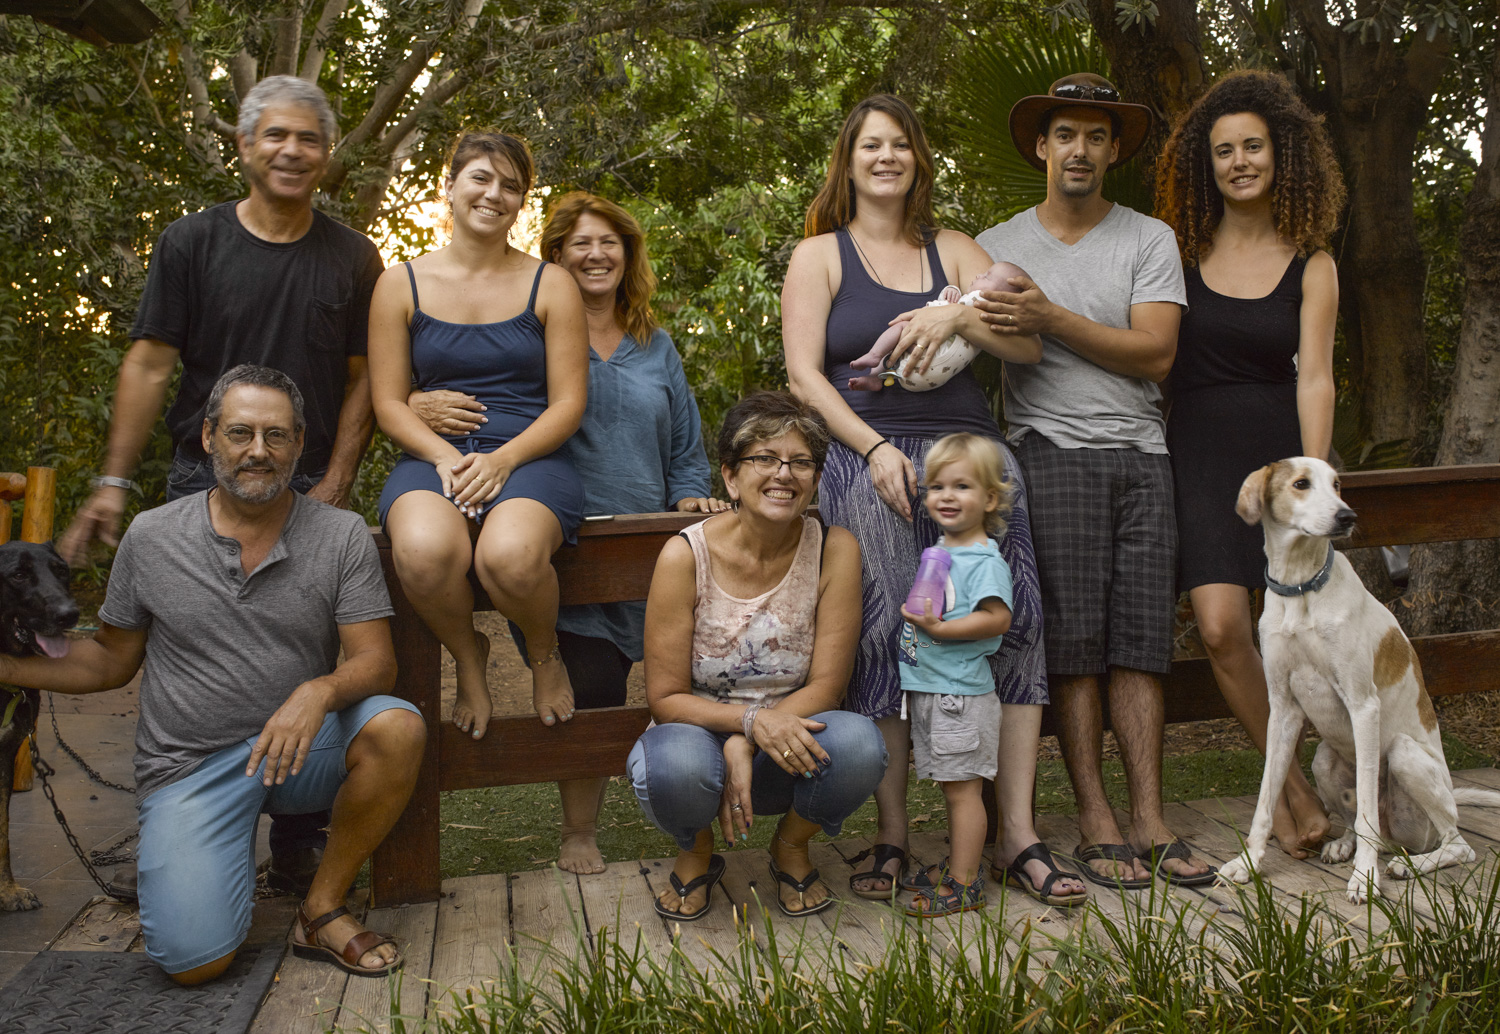 Group - Sde Nitzan, September 2015